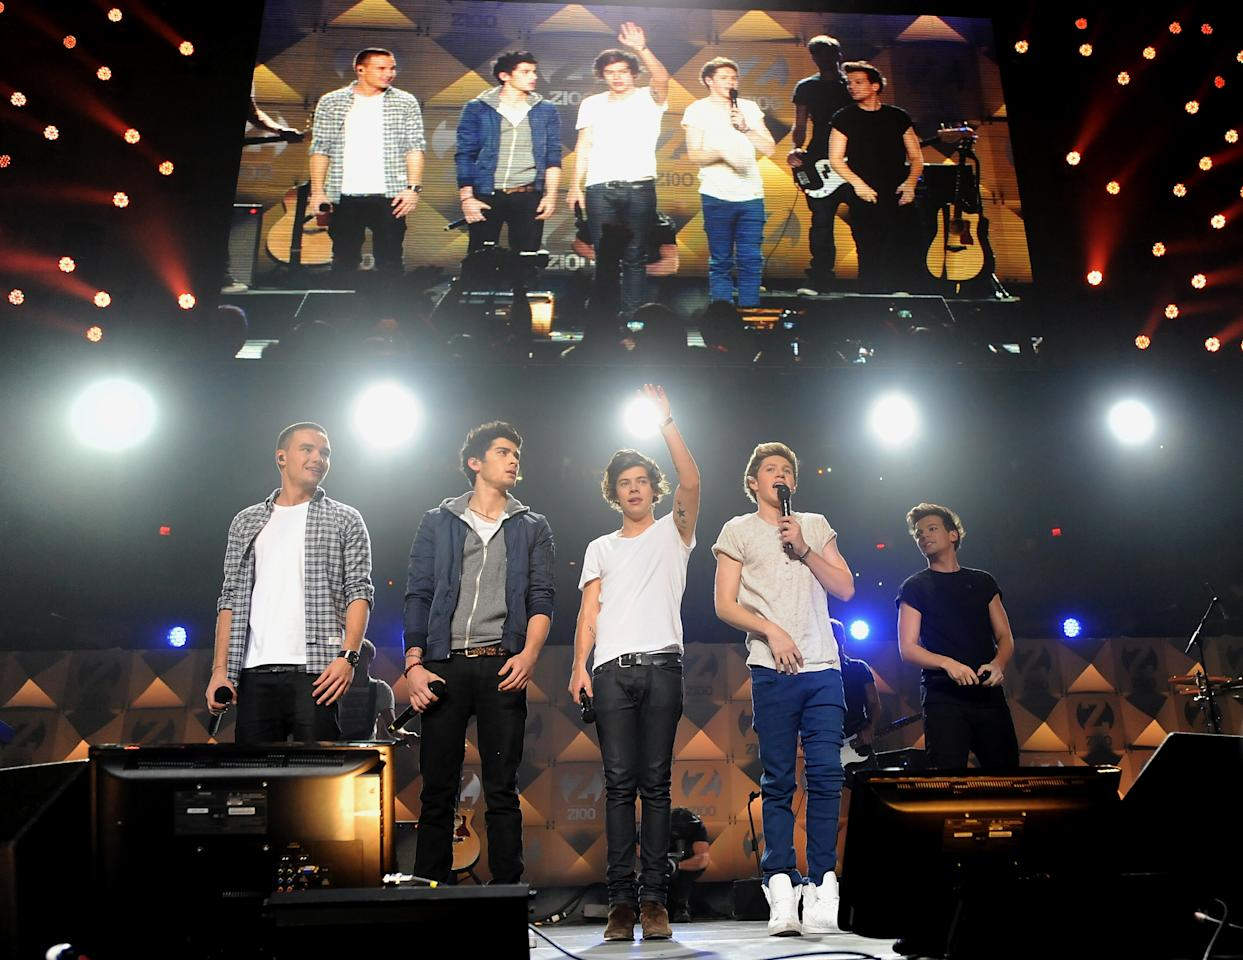 One Direction perform at Z100's Jingle Ball 2012 presented by Aeropostale at Madison Square Garden on Friday Dec. 7, 2012 in New York. (Photo by Evan Agostini/Invision/AP)